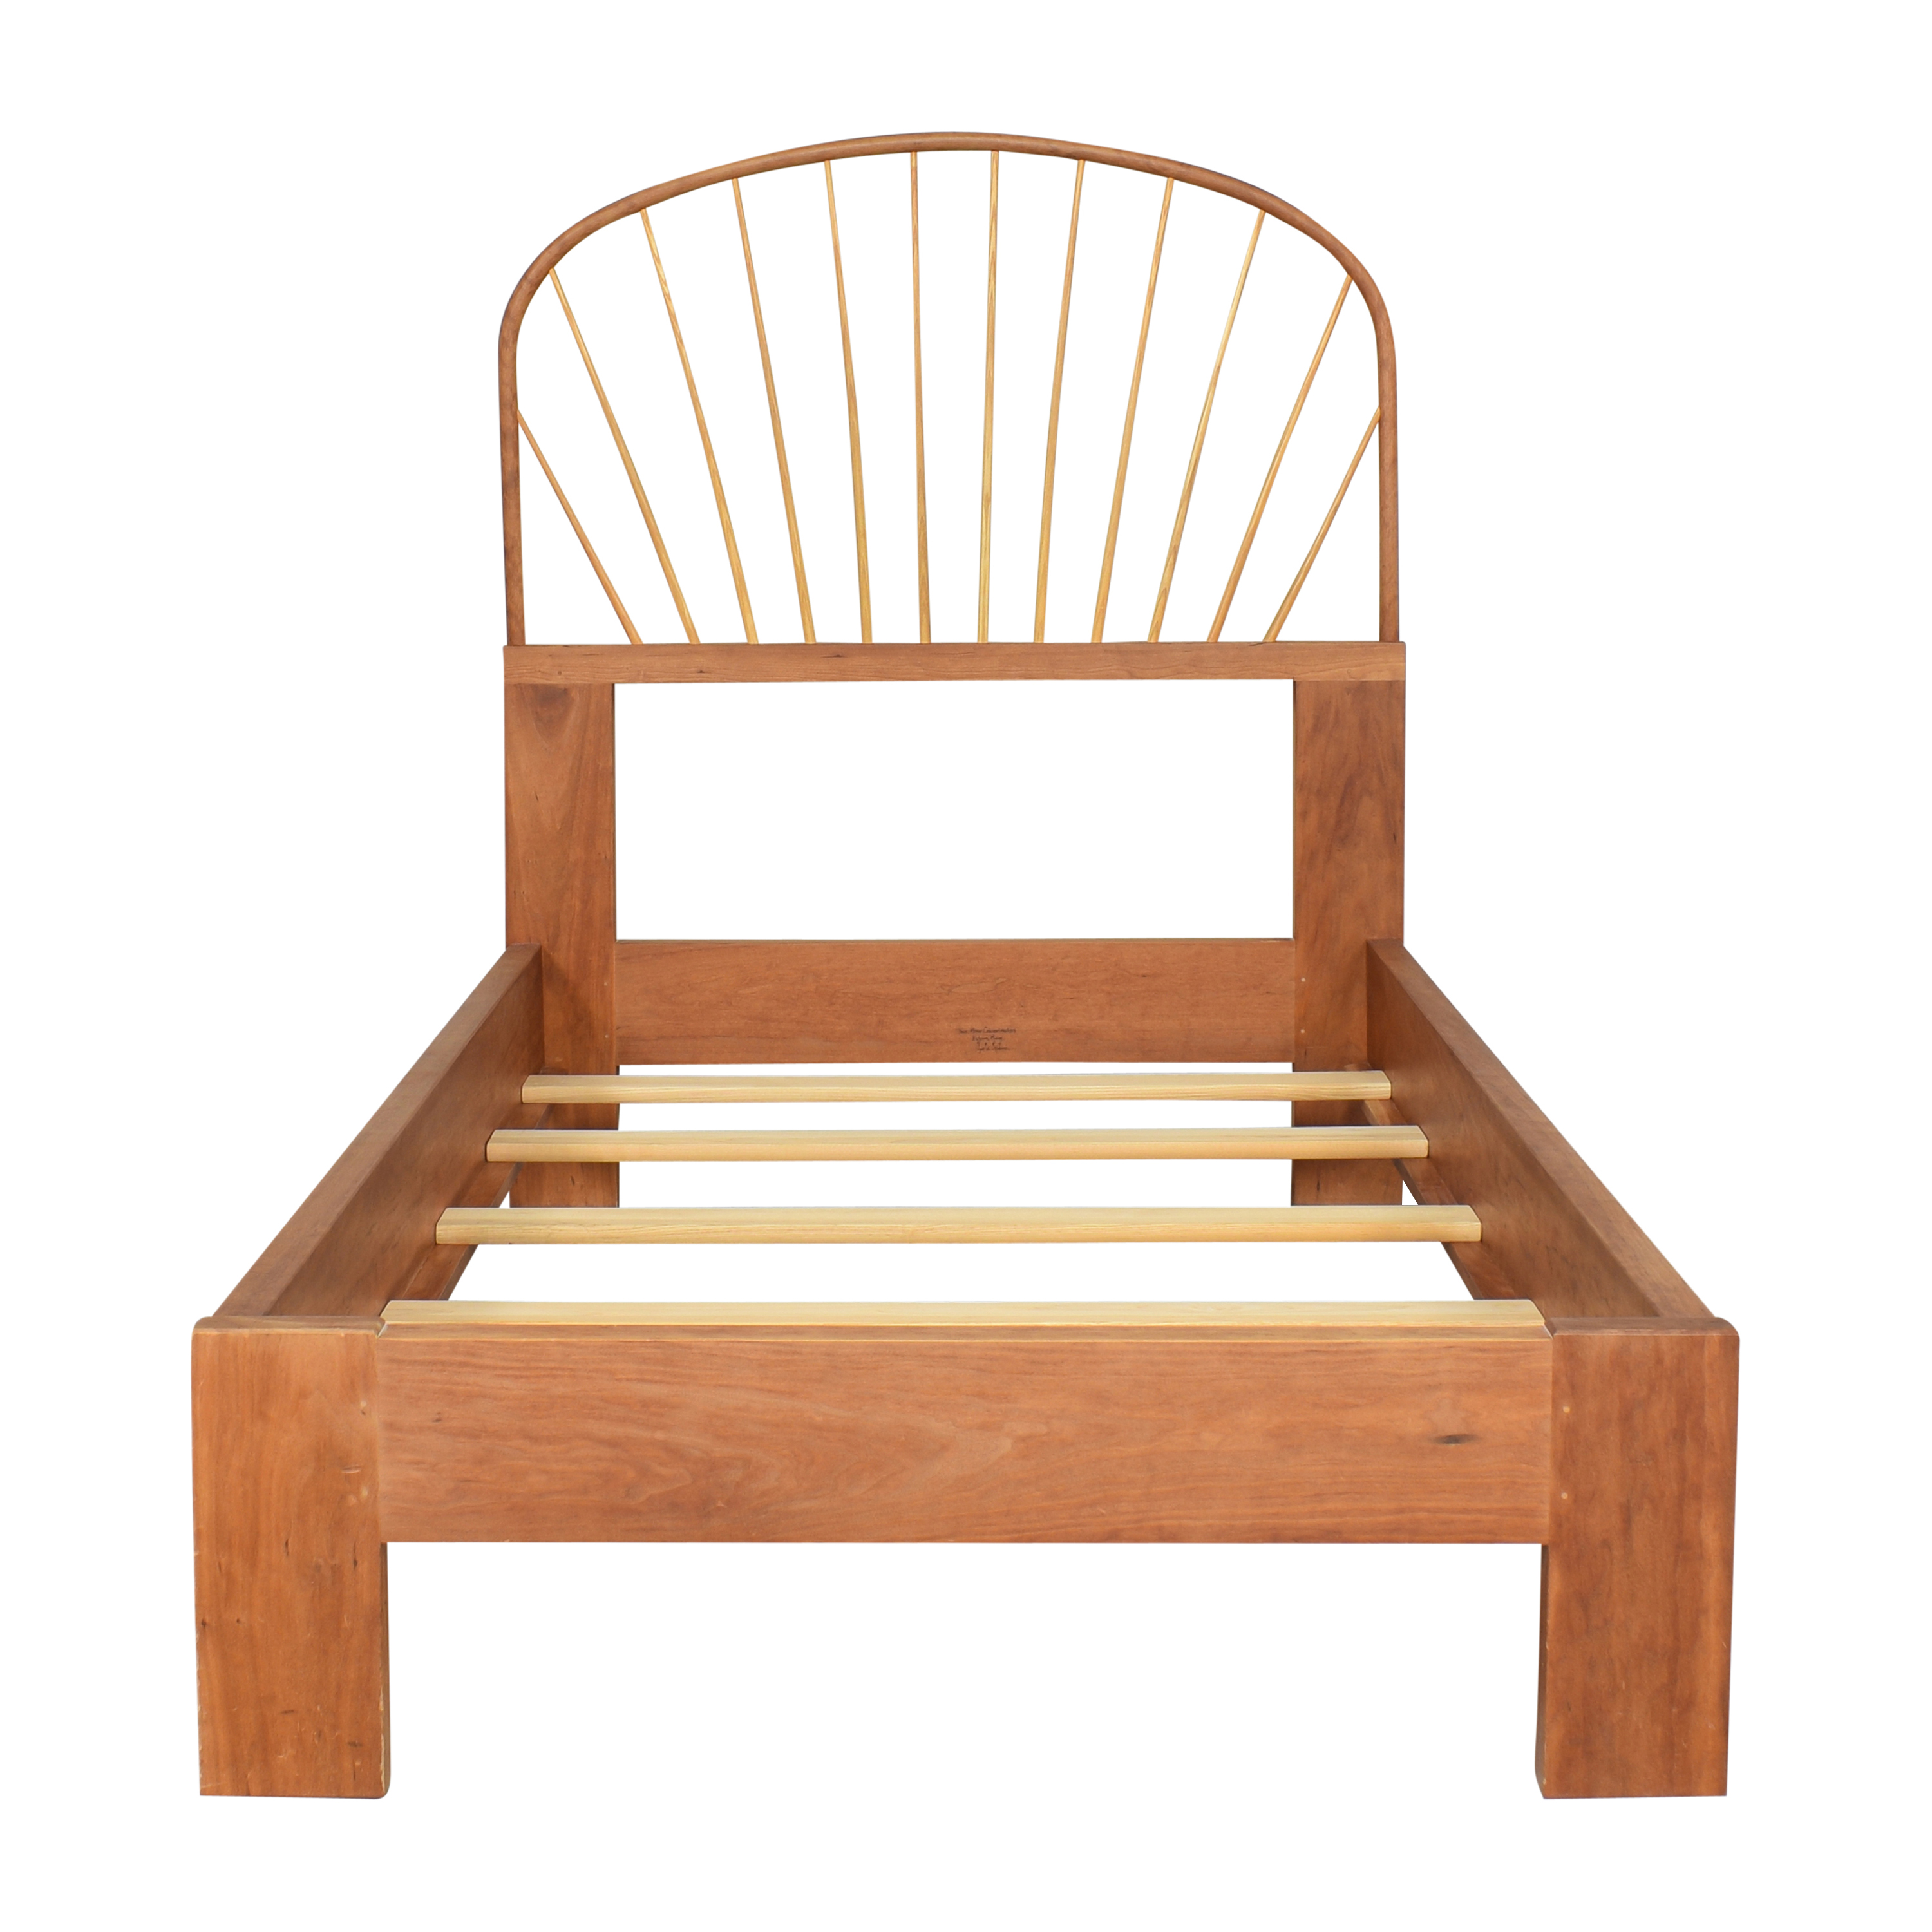 Thos. Moser Thos. Moser Twin Spindle Bed for sale